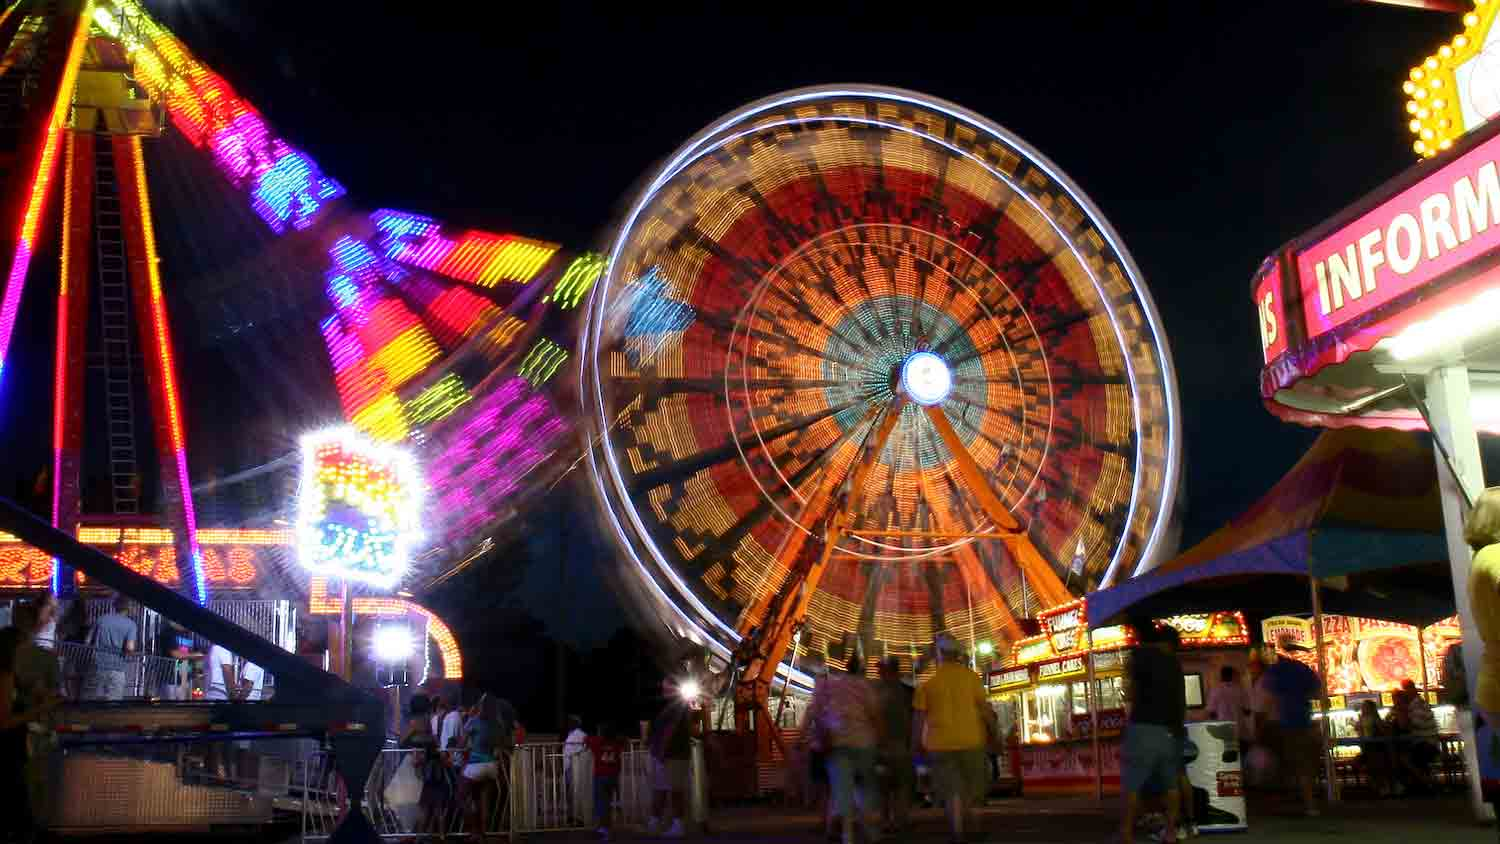 Indiana State Fair 2014 - A Time to Celebrate 1